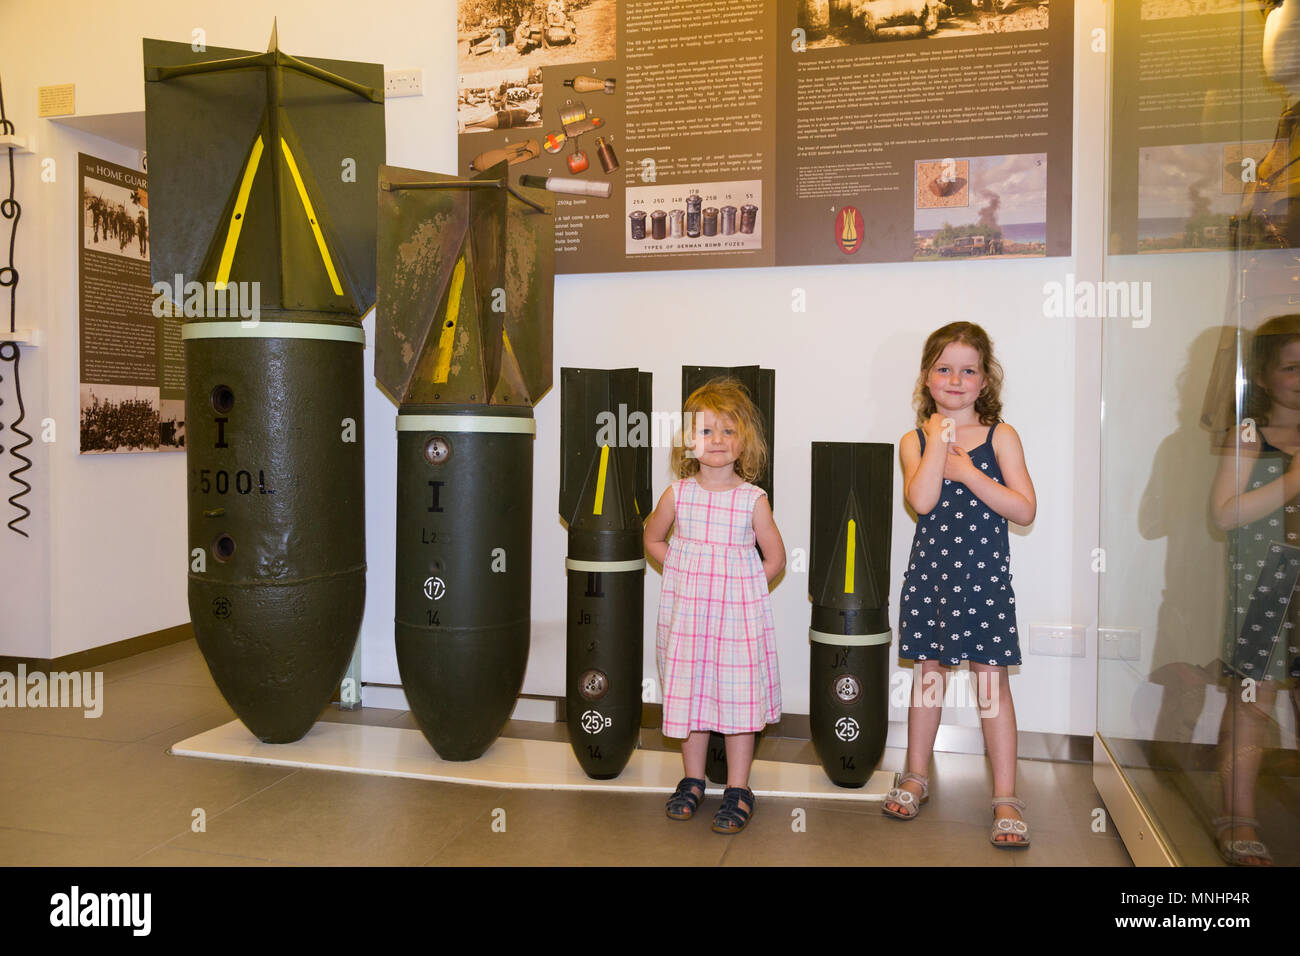 Display of bombs of various sizes used by axis countries Germany & Italy against Malta during World War II. Accompanied by young children child kid kids at the Malta at War Museum in Malta - Stock Image